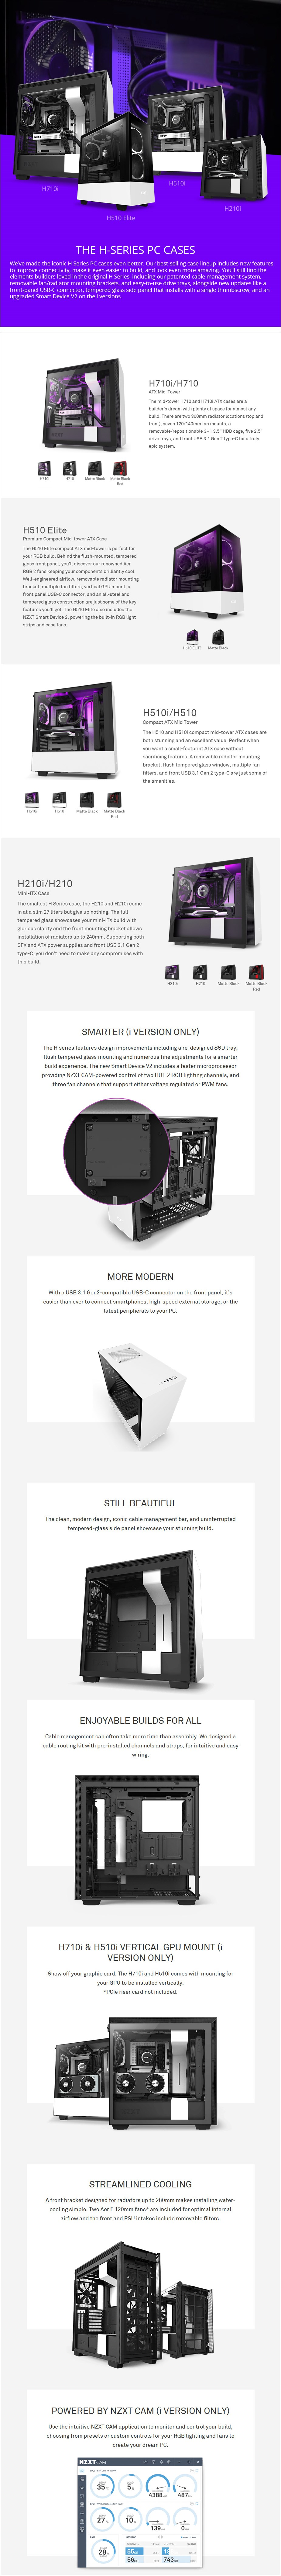 NZXT H510i Smart Tempered Glass Mid-Tower ATX Case - Overview 1